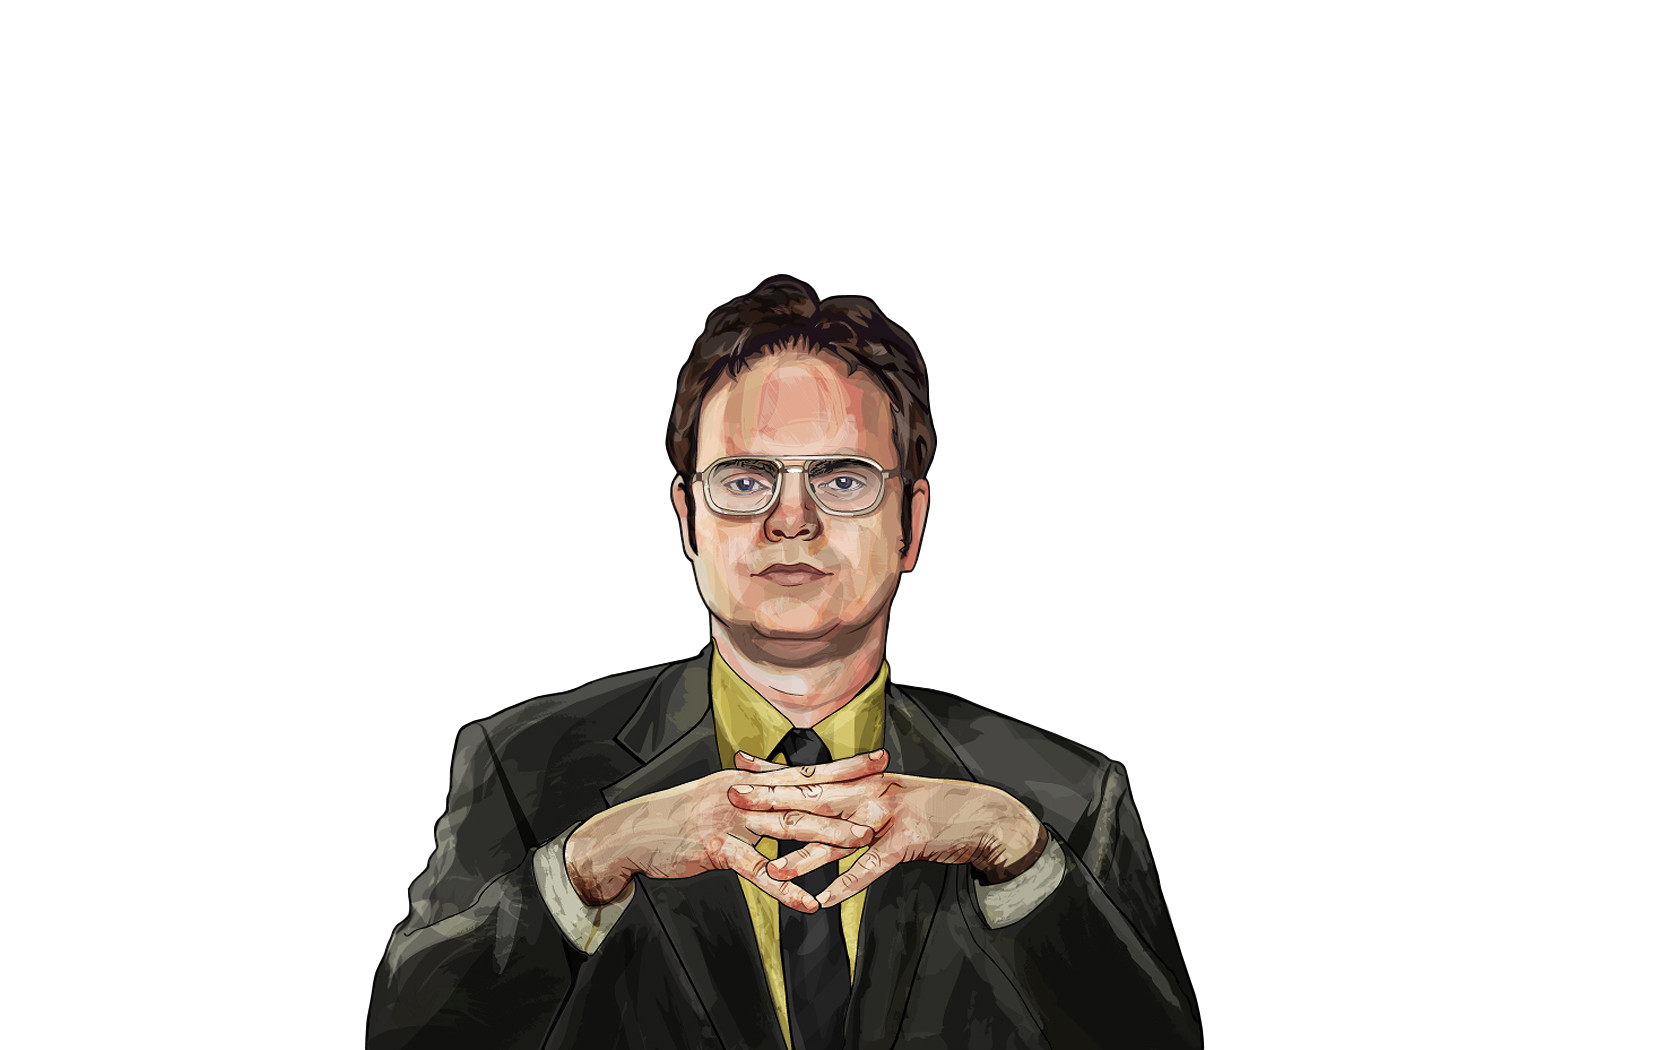 Dwight Schrute Png, png collections at sccpre.cat.